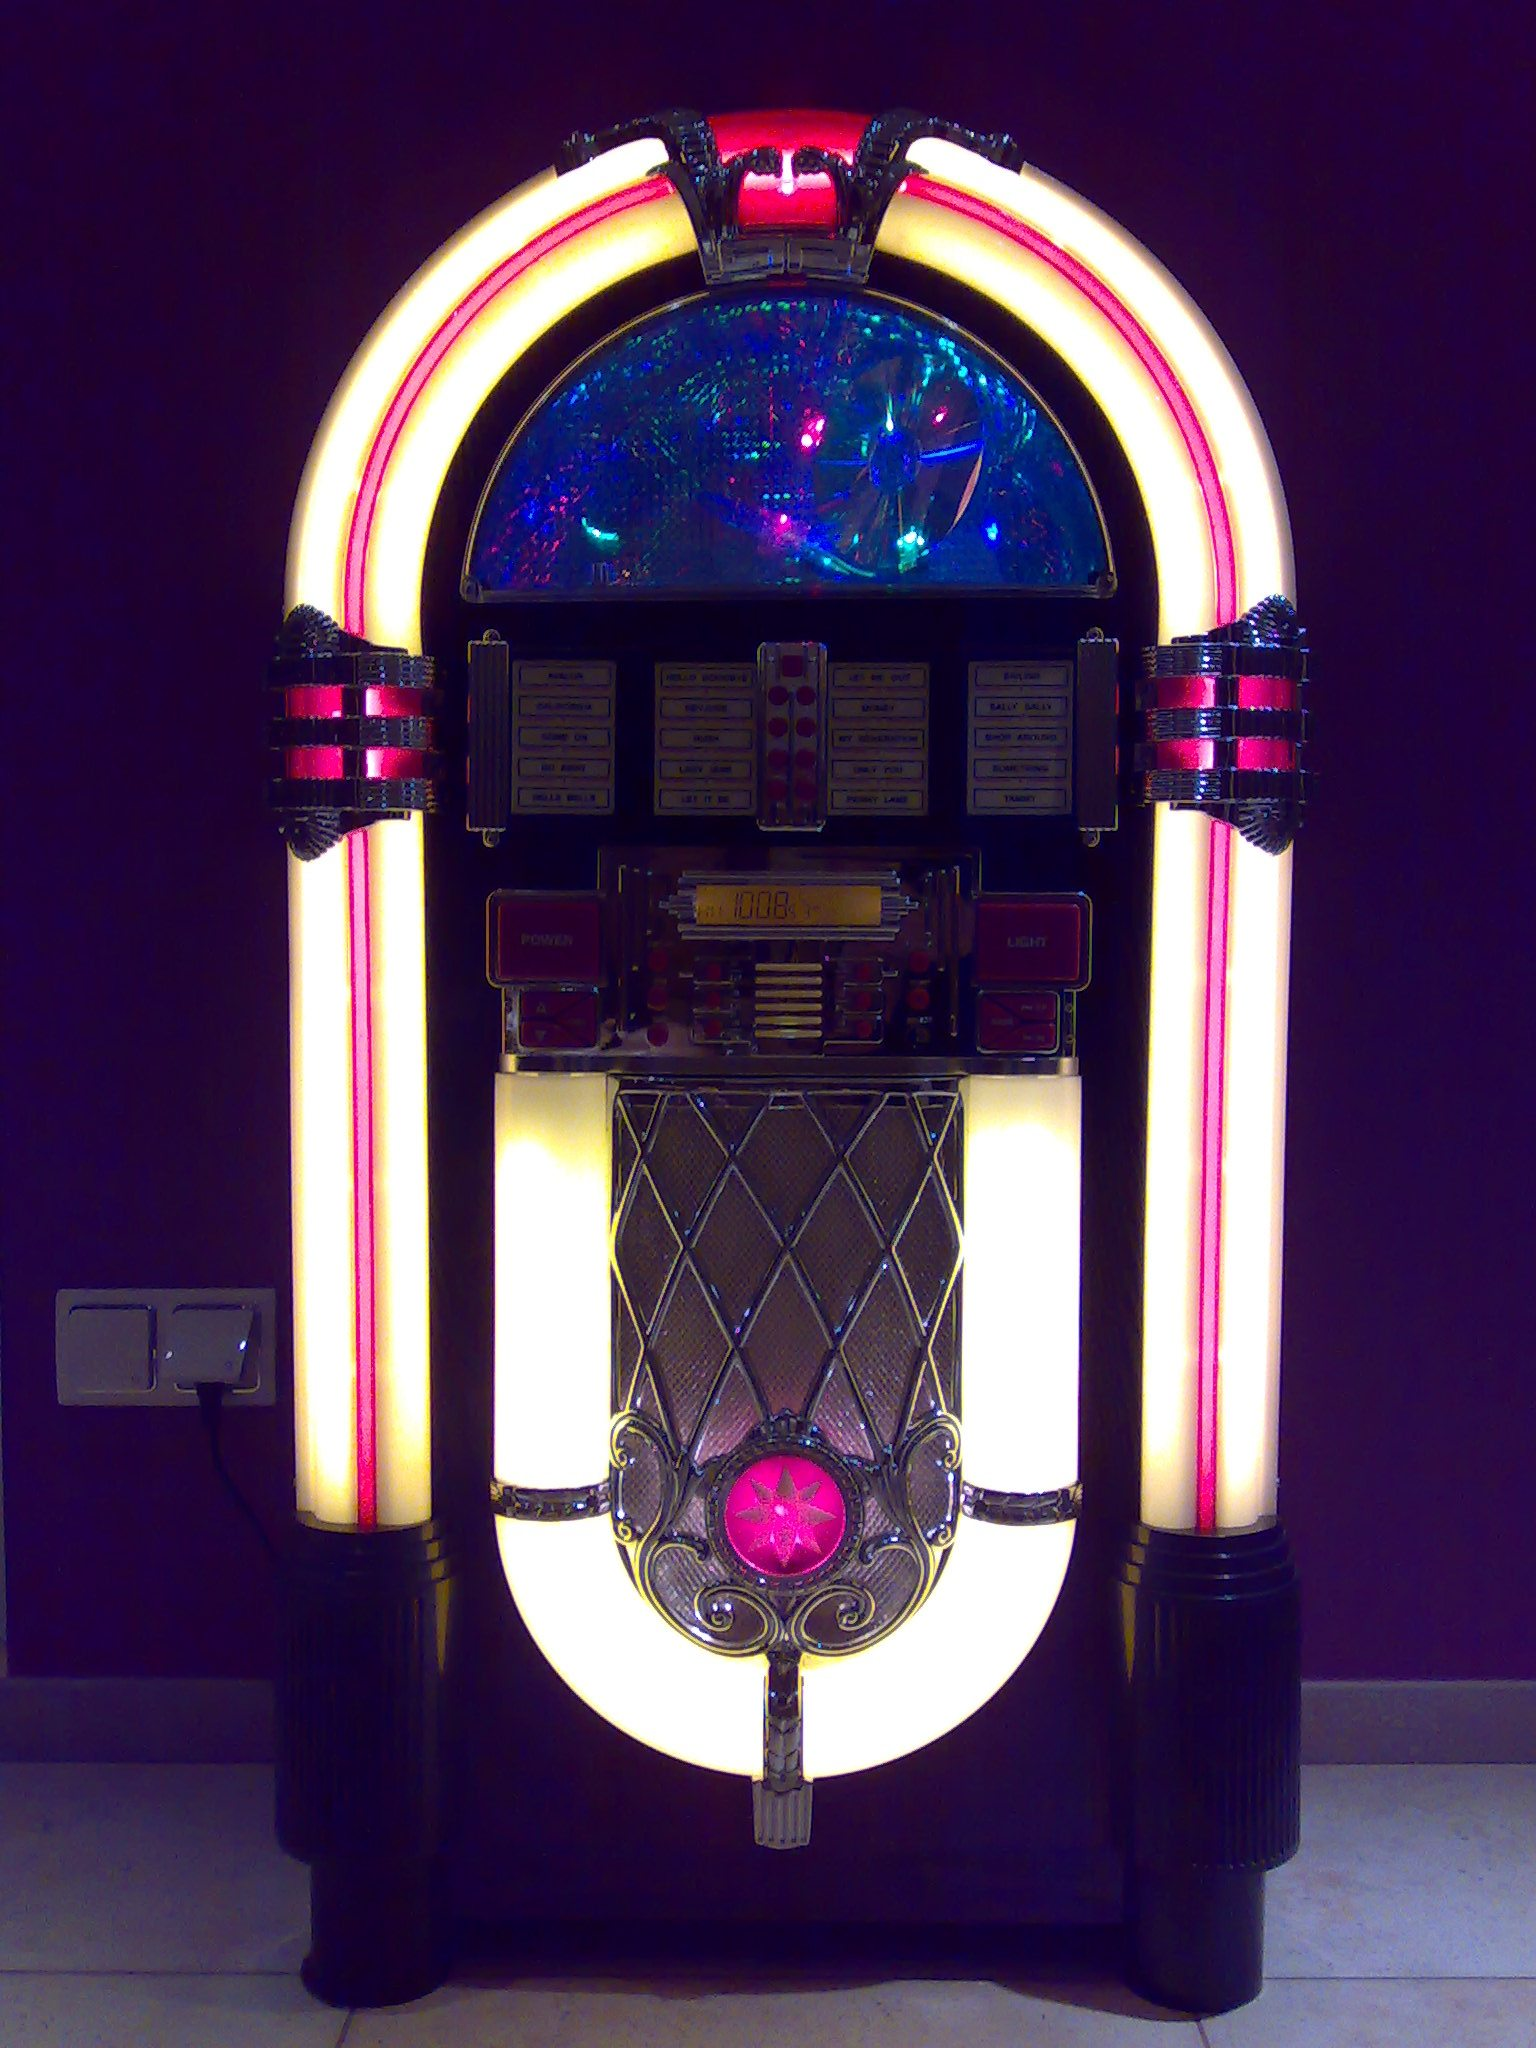 Elta 2761 N hollywood-10 jukebox o�wietlenie na STAND BY